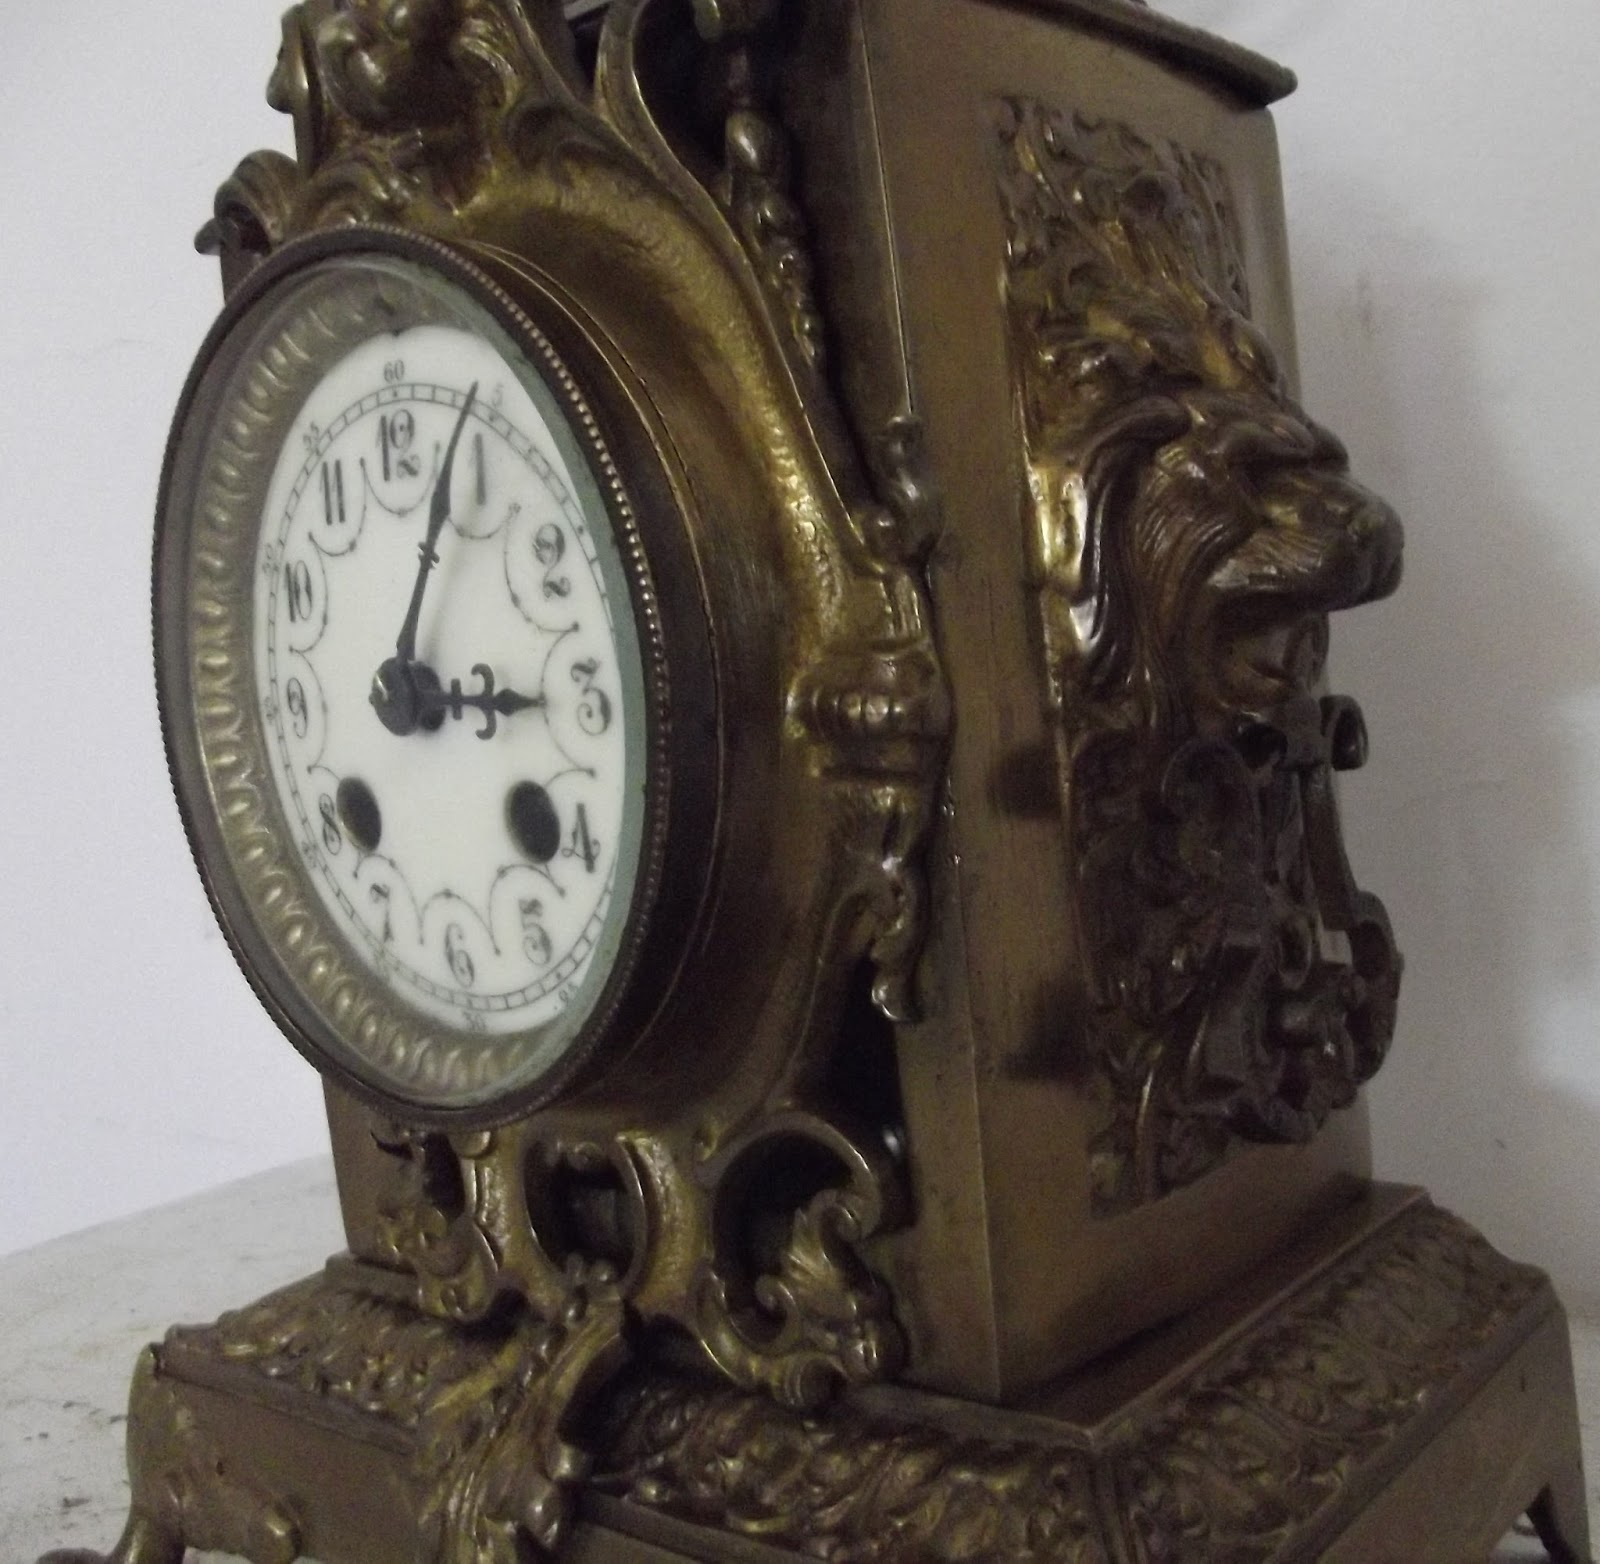 tischuhr cartel bronze kopf l we napoleon 19 jahrhundert bewegung de paris uhr ebay. Black Bedroom Furniture Sets. Home Design Ideas